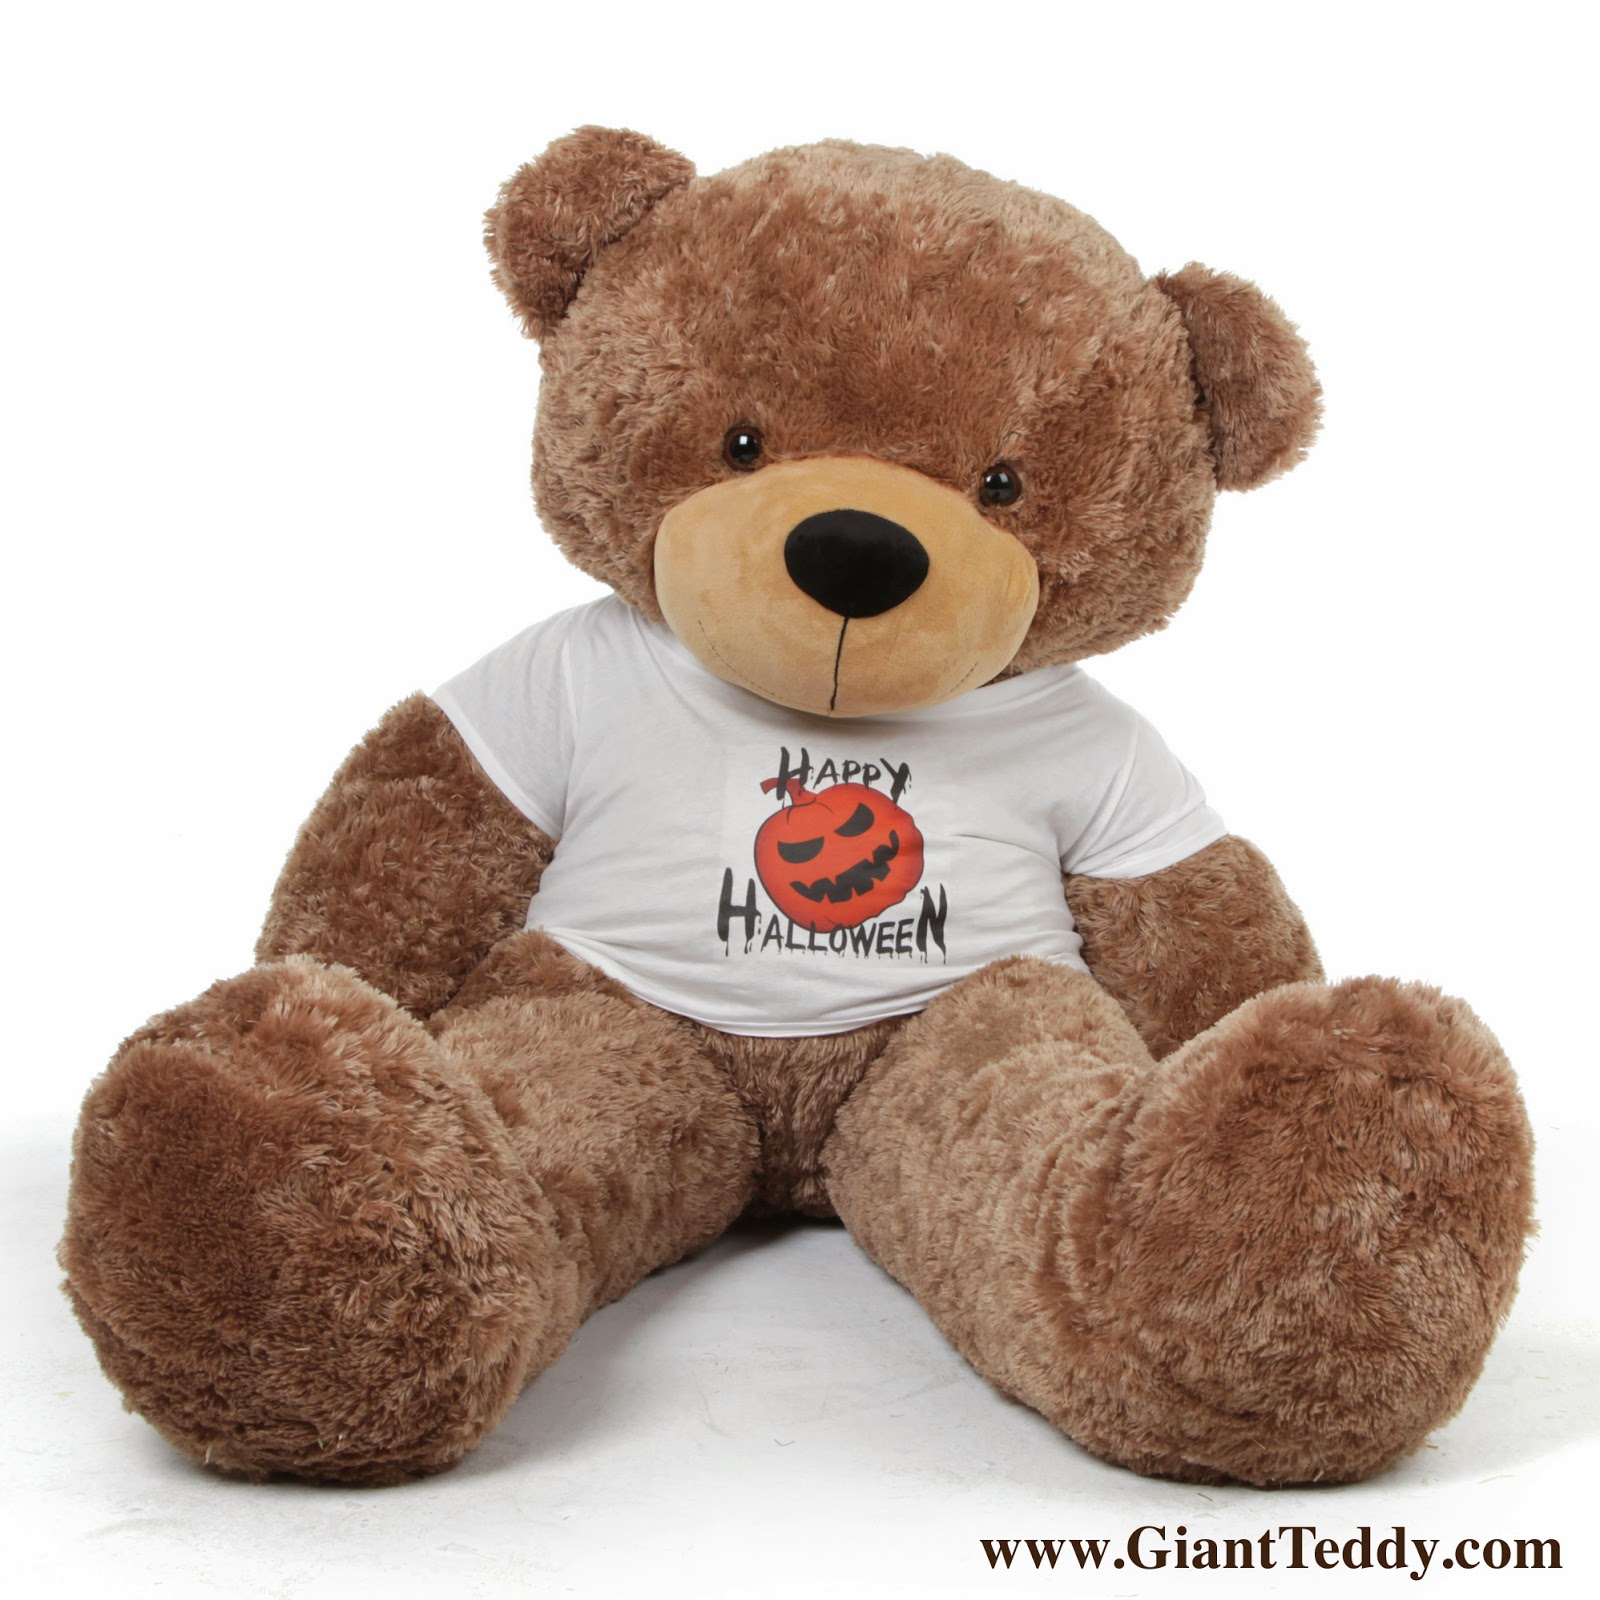 Sunny Cuddles is five feet of cute Happy Halloween Teddy Bear - he thinks his shirt is Pawesome!